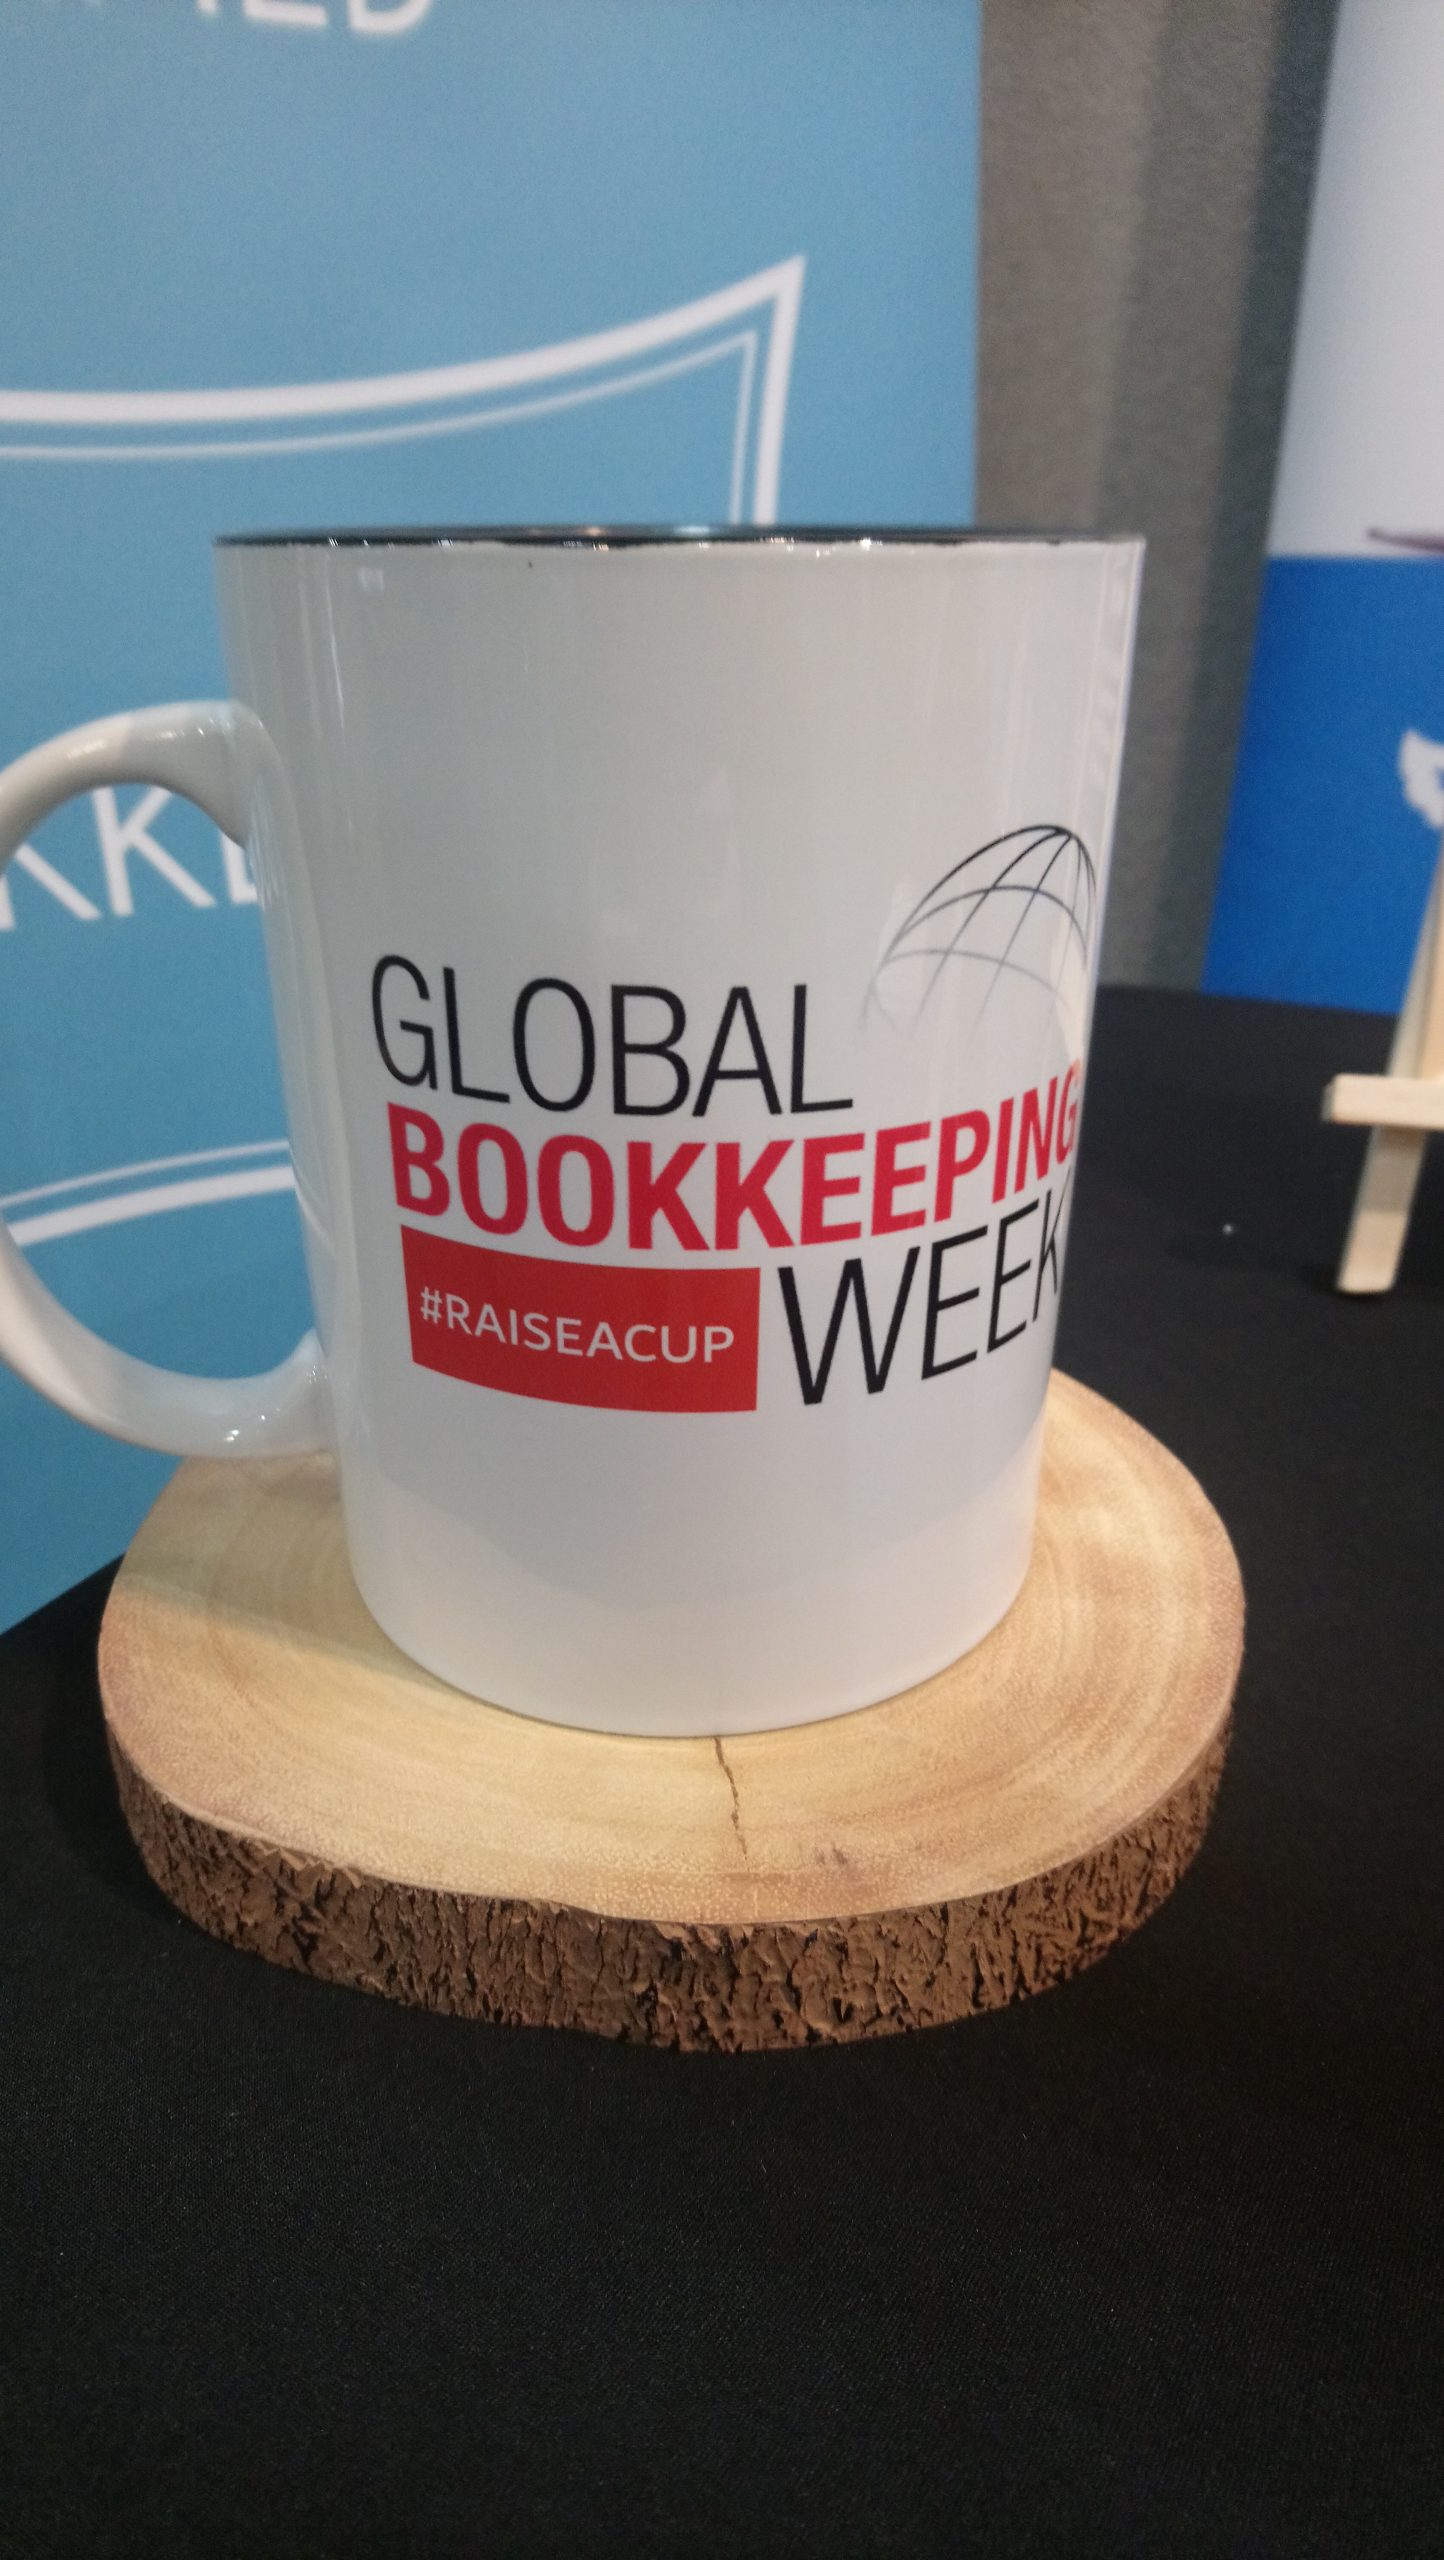 swbexpo-raise-a-cup-exe-bookkeeping